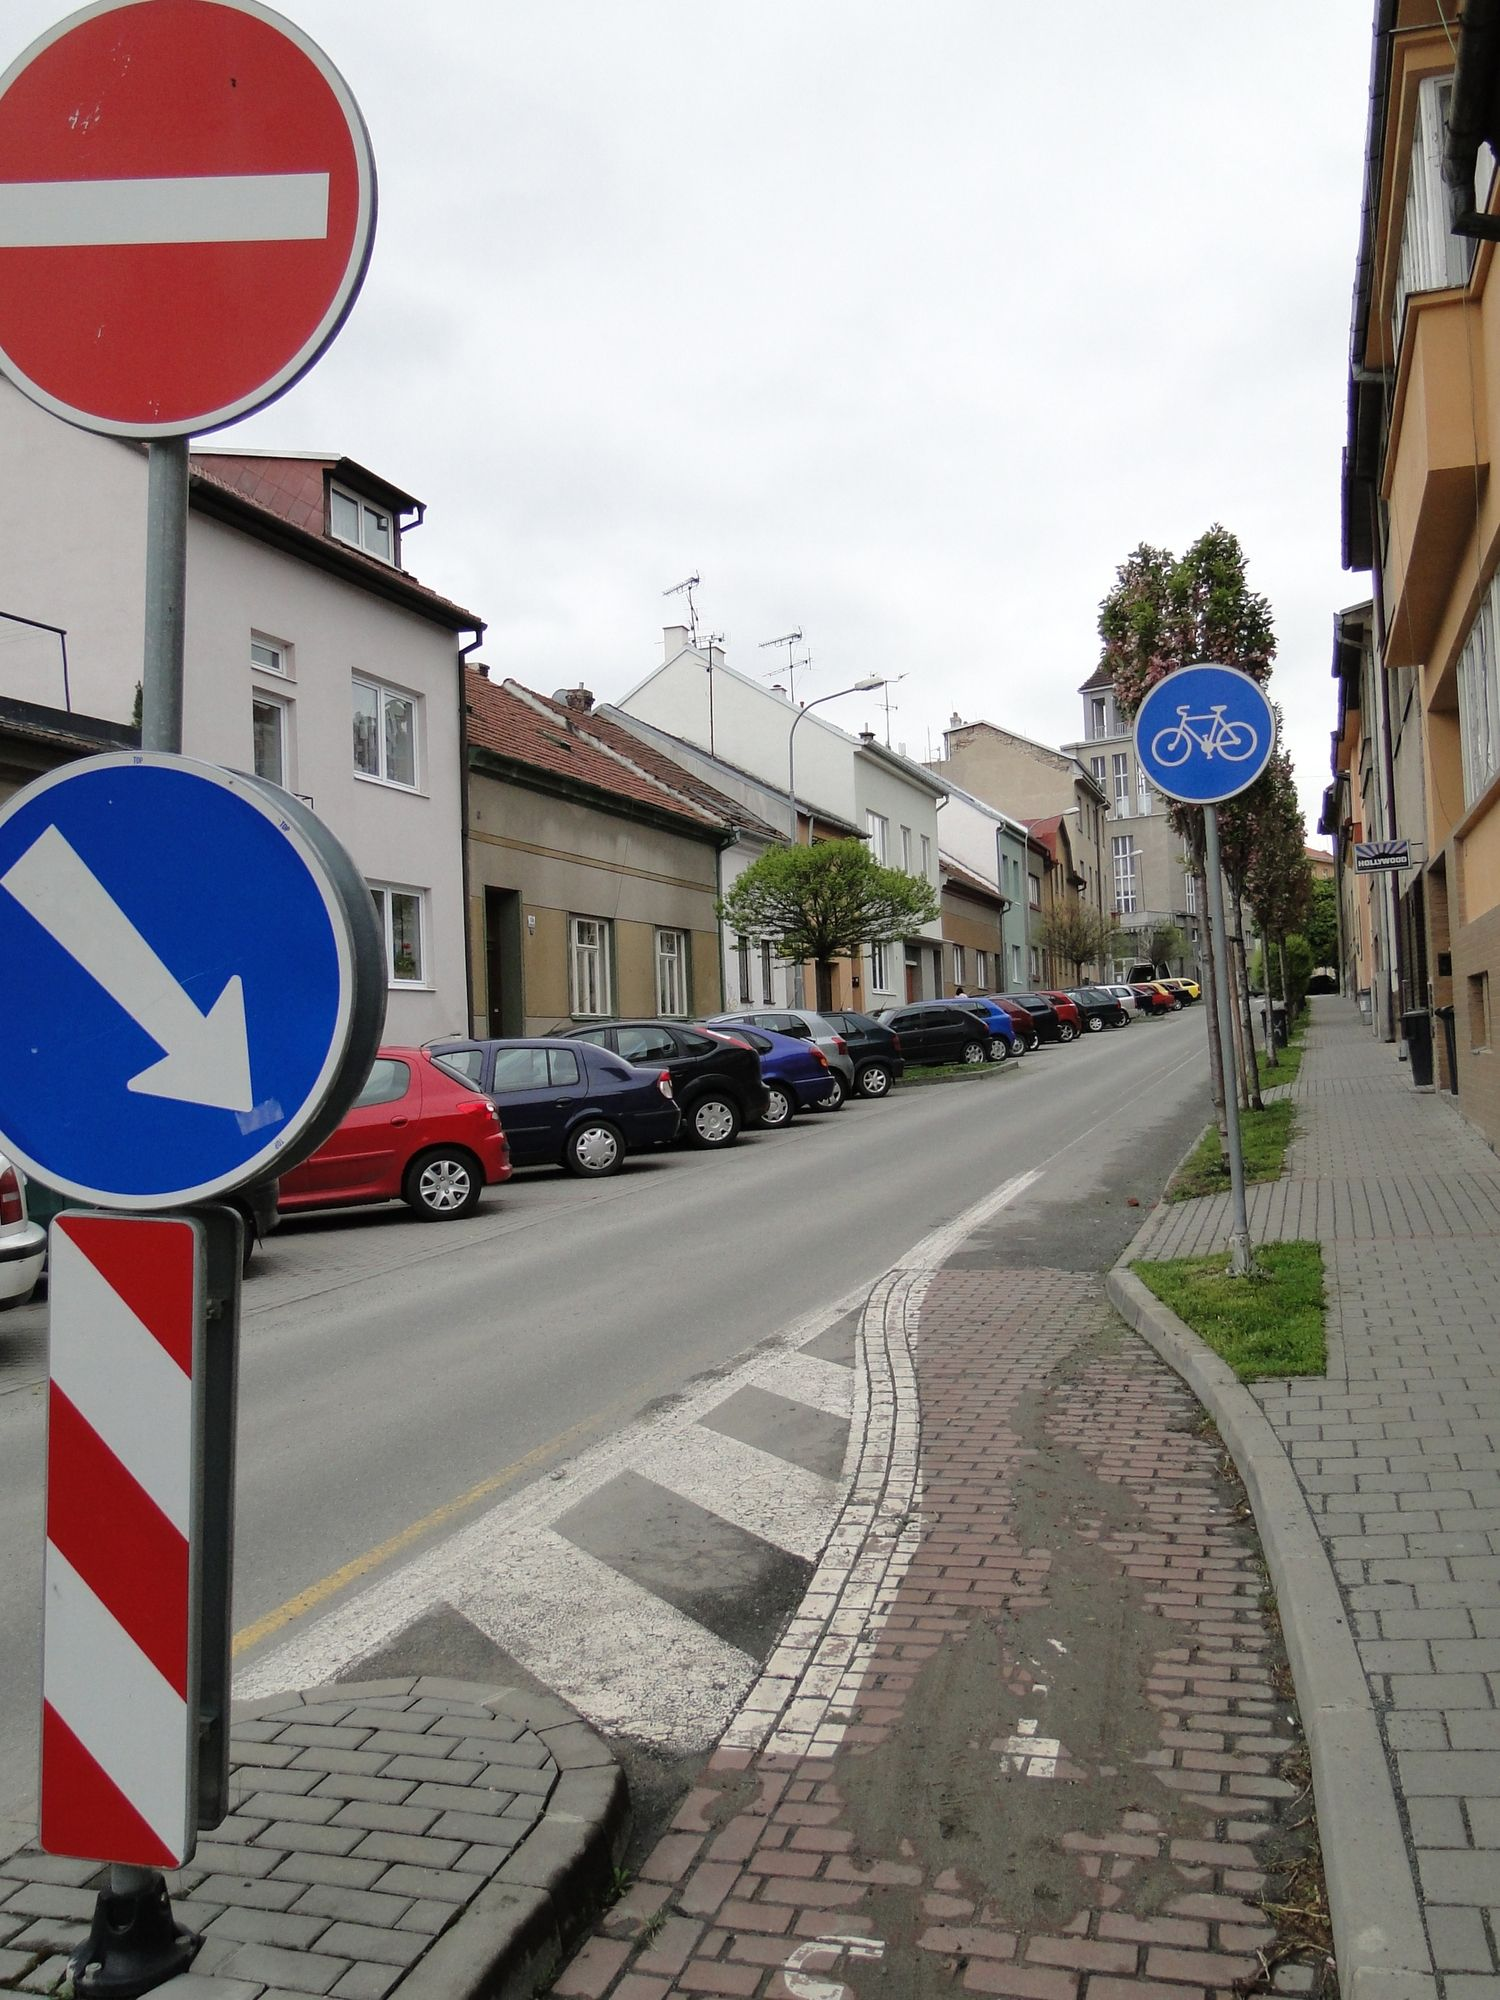 Road and Street Signs Part 1 – Smashing Magazine